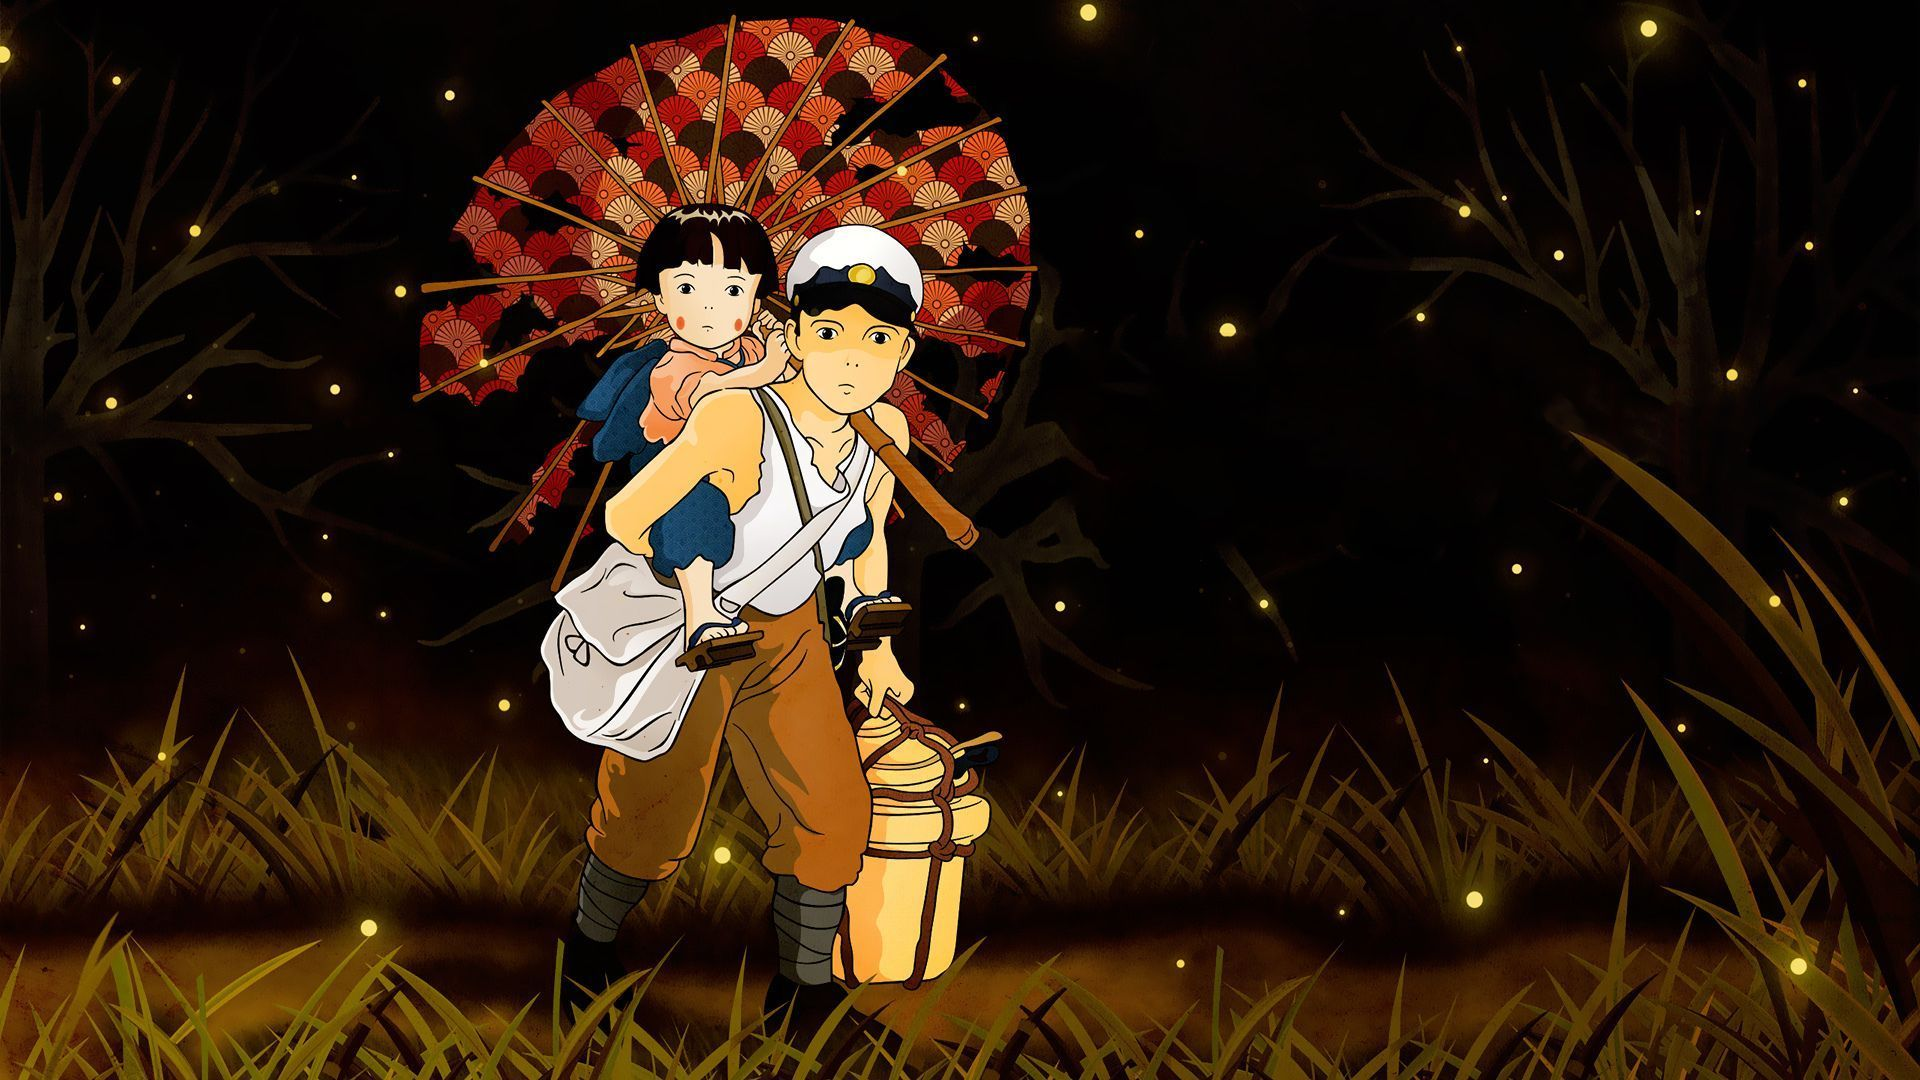 Grave Of The Fireflies Wallpapers Top Free Grave Of The Fireflies Backgrounds Wallpaperaccess